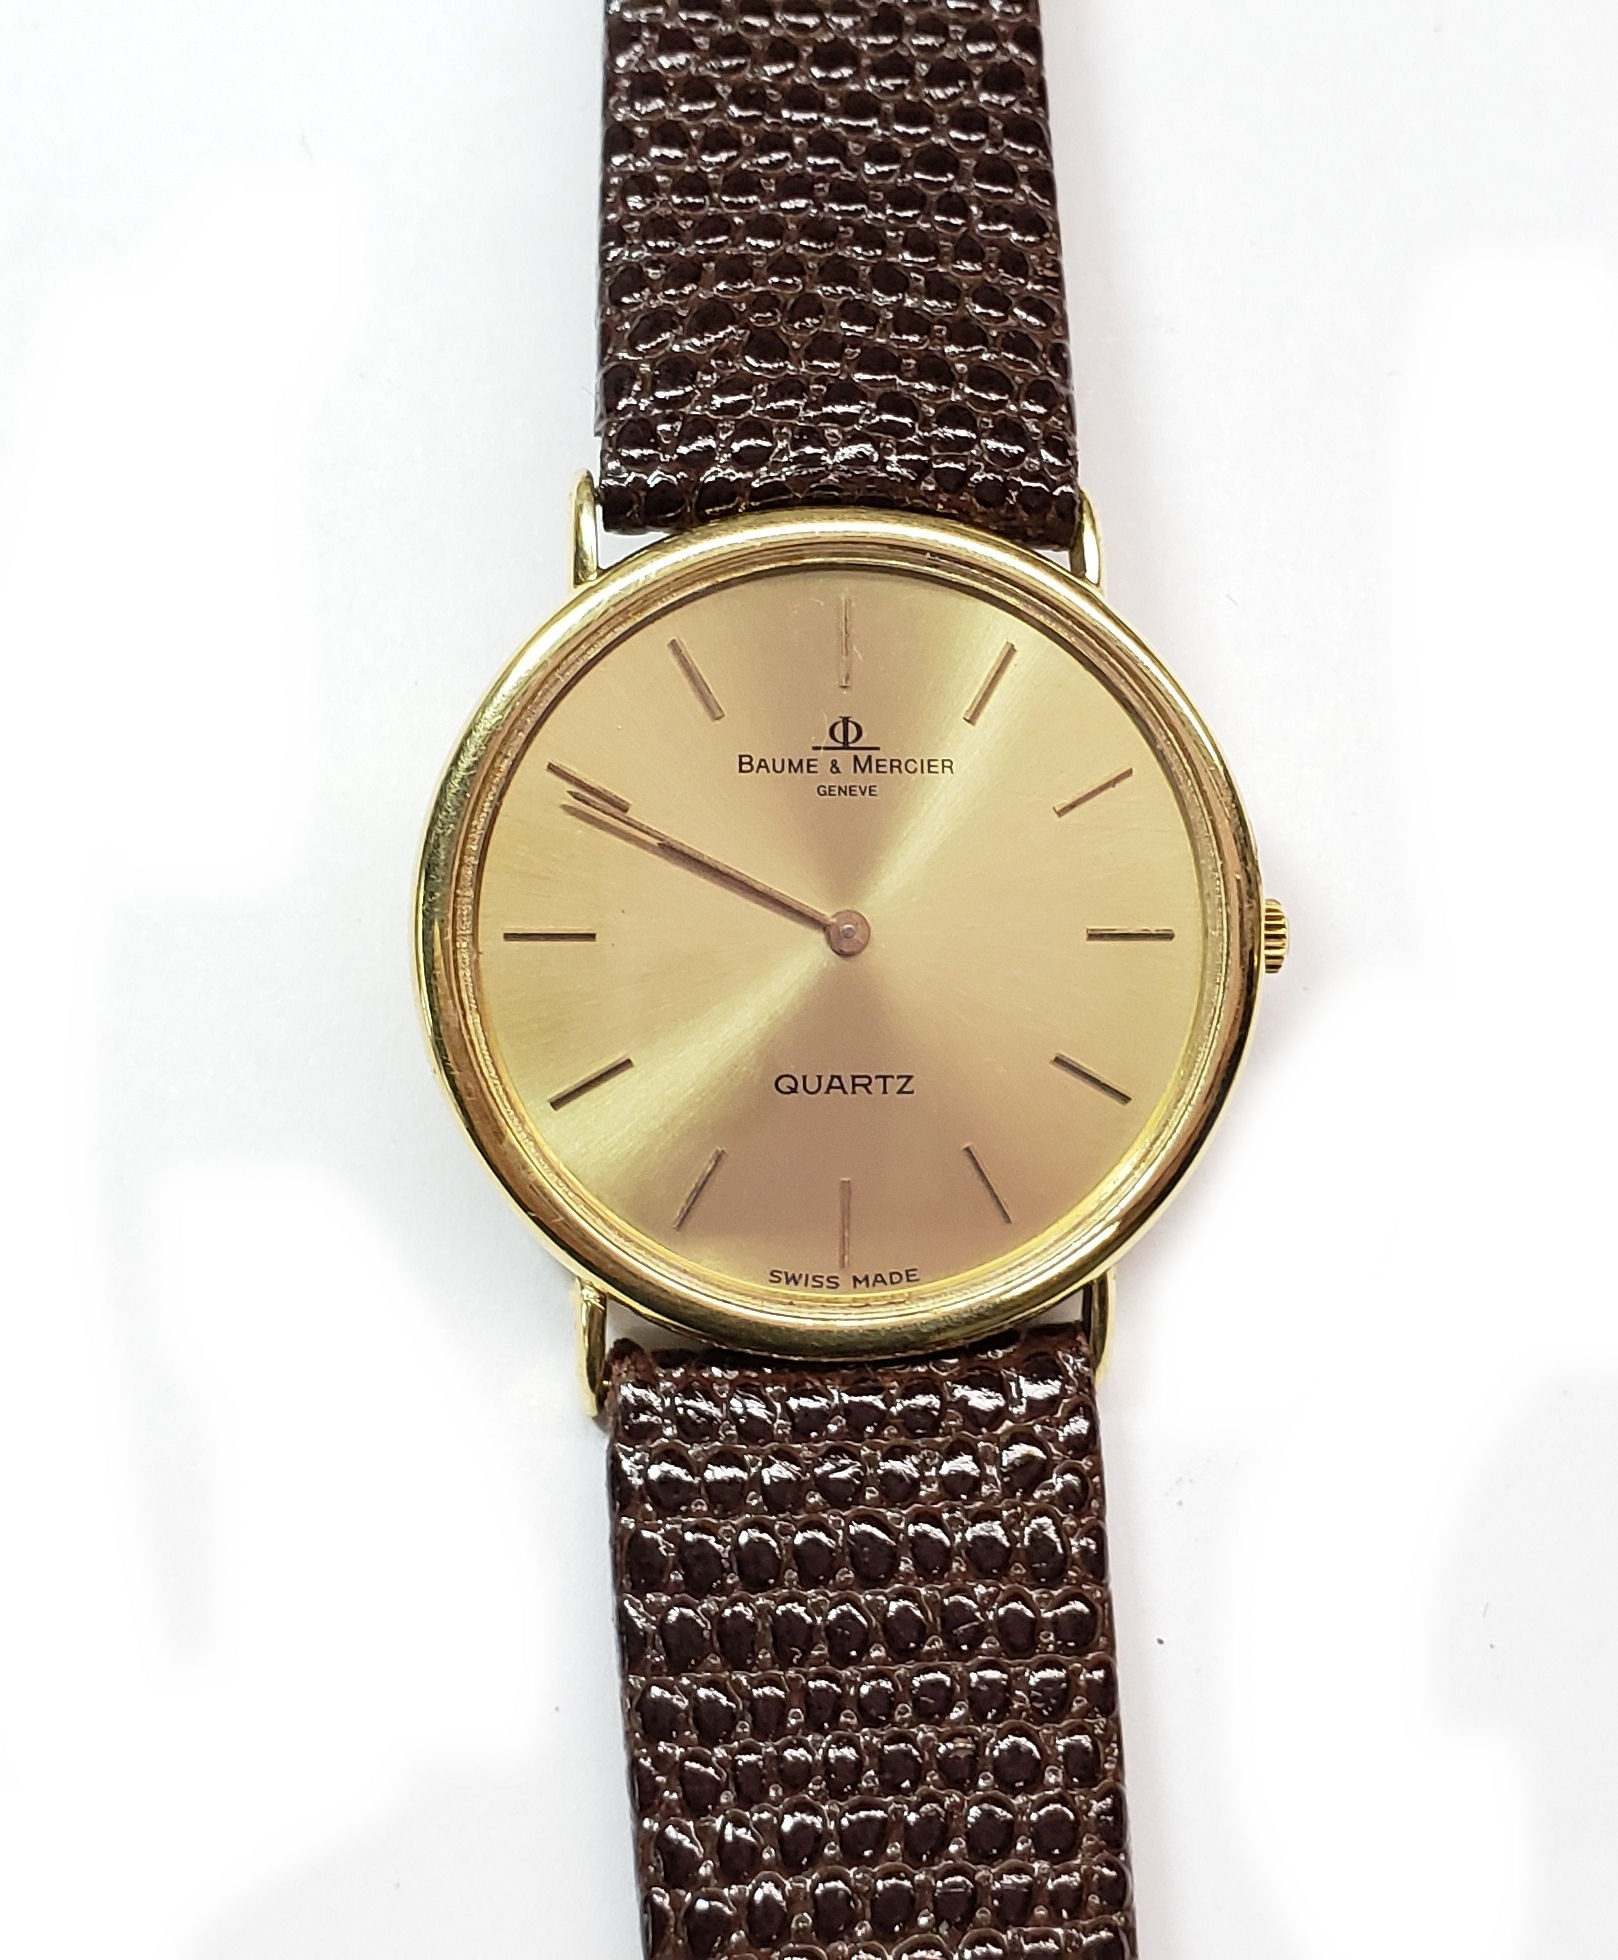 Baum & Mercier 14kt. Gold Watch with Strap, Vintage